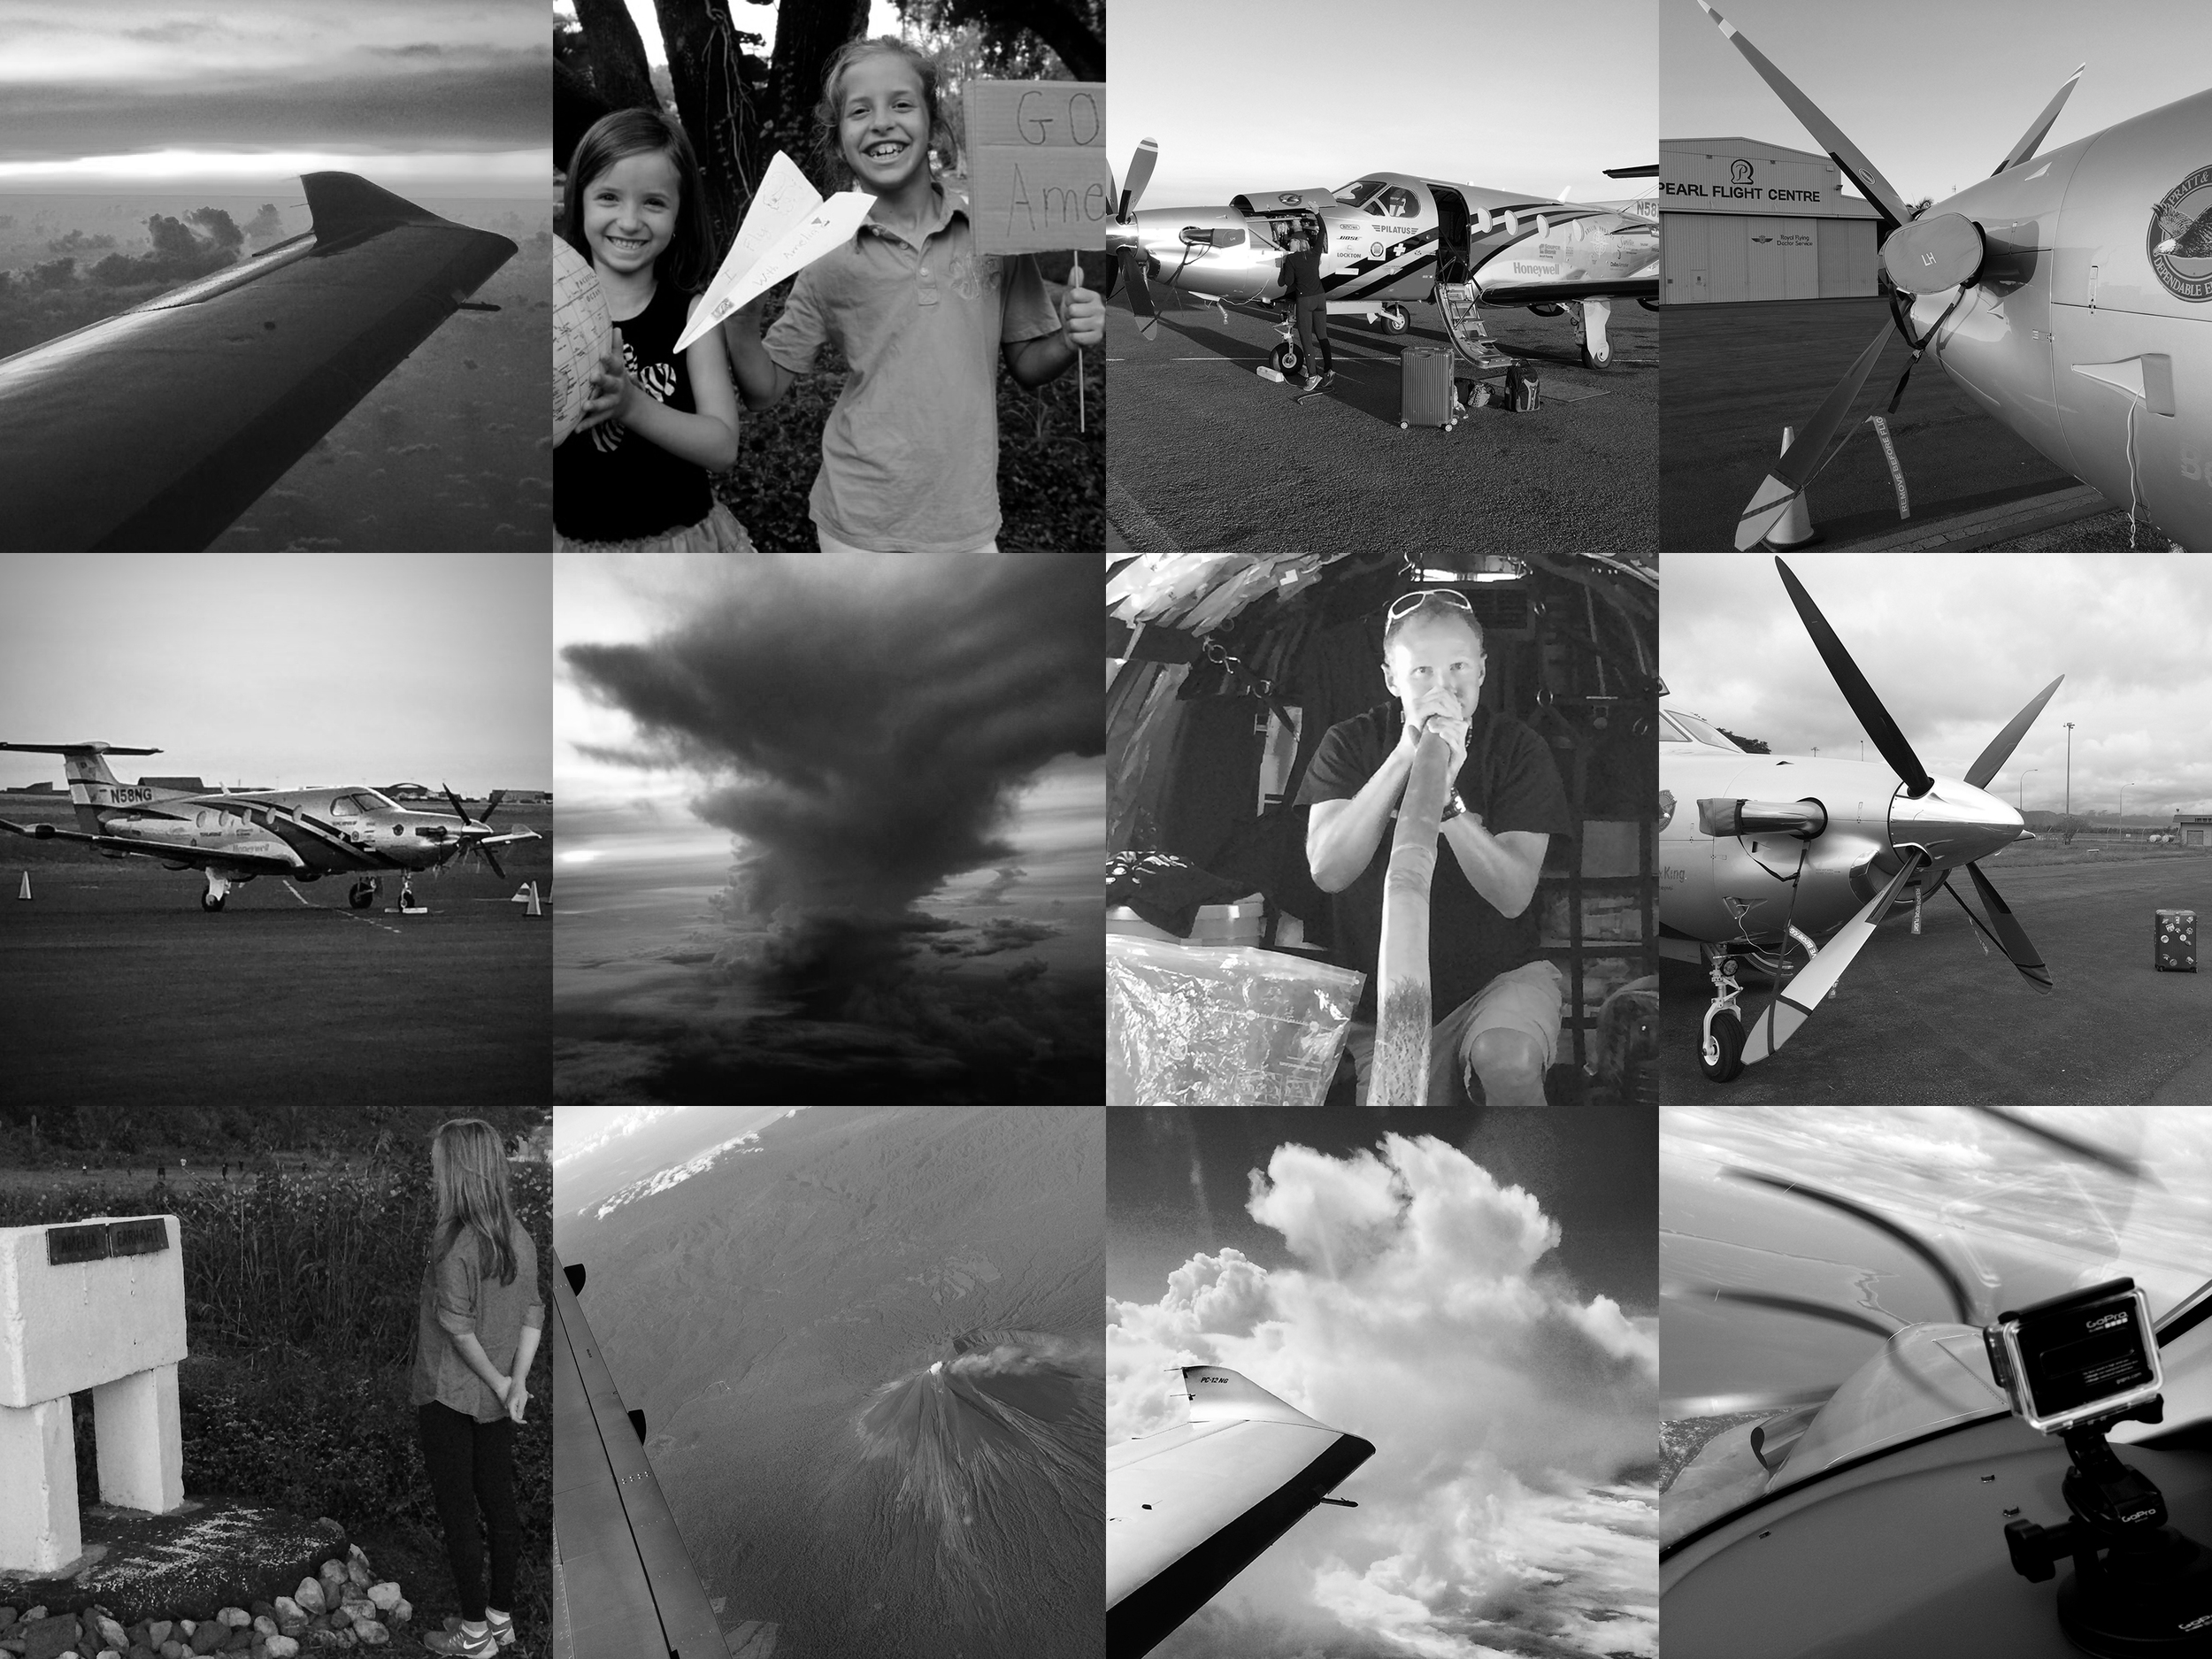 IMG-Flight3-BW.jpg